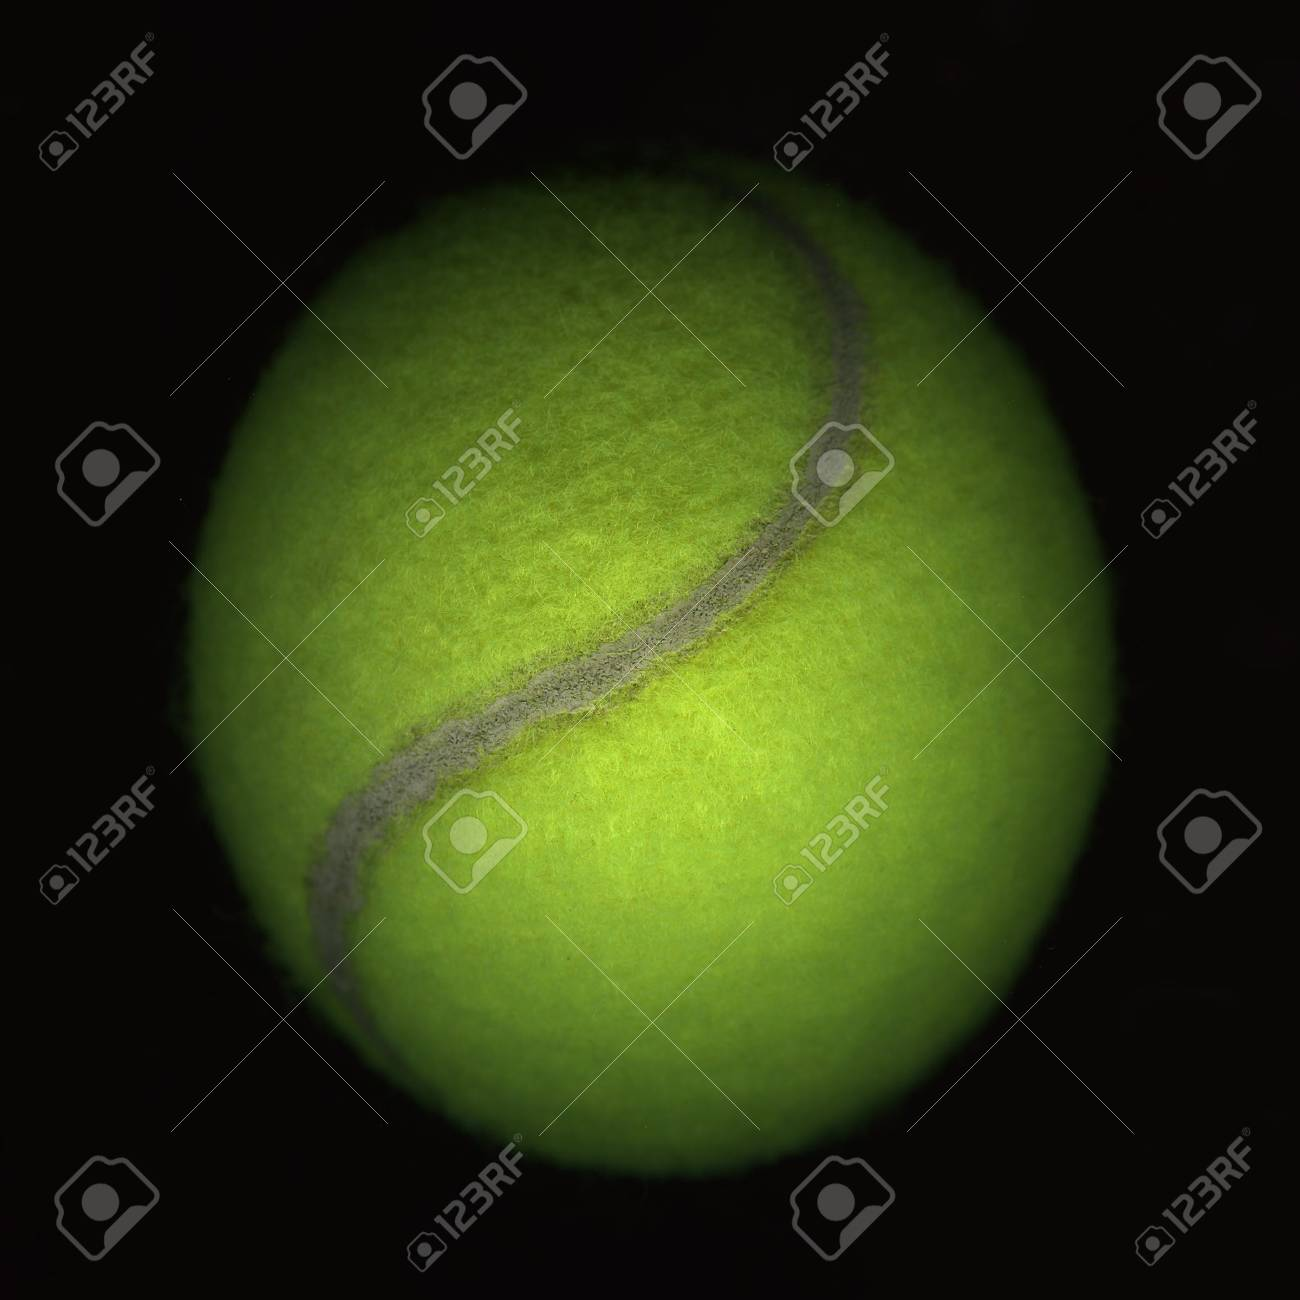 tennis ball on black - abstract image from a flatbed scanner Stock Photo - 2336927